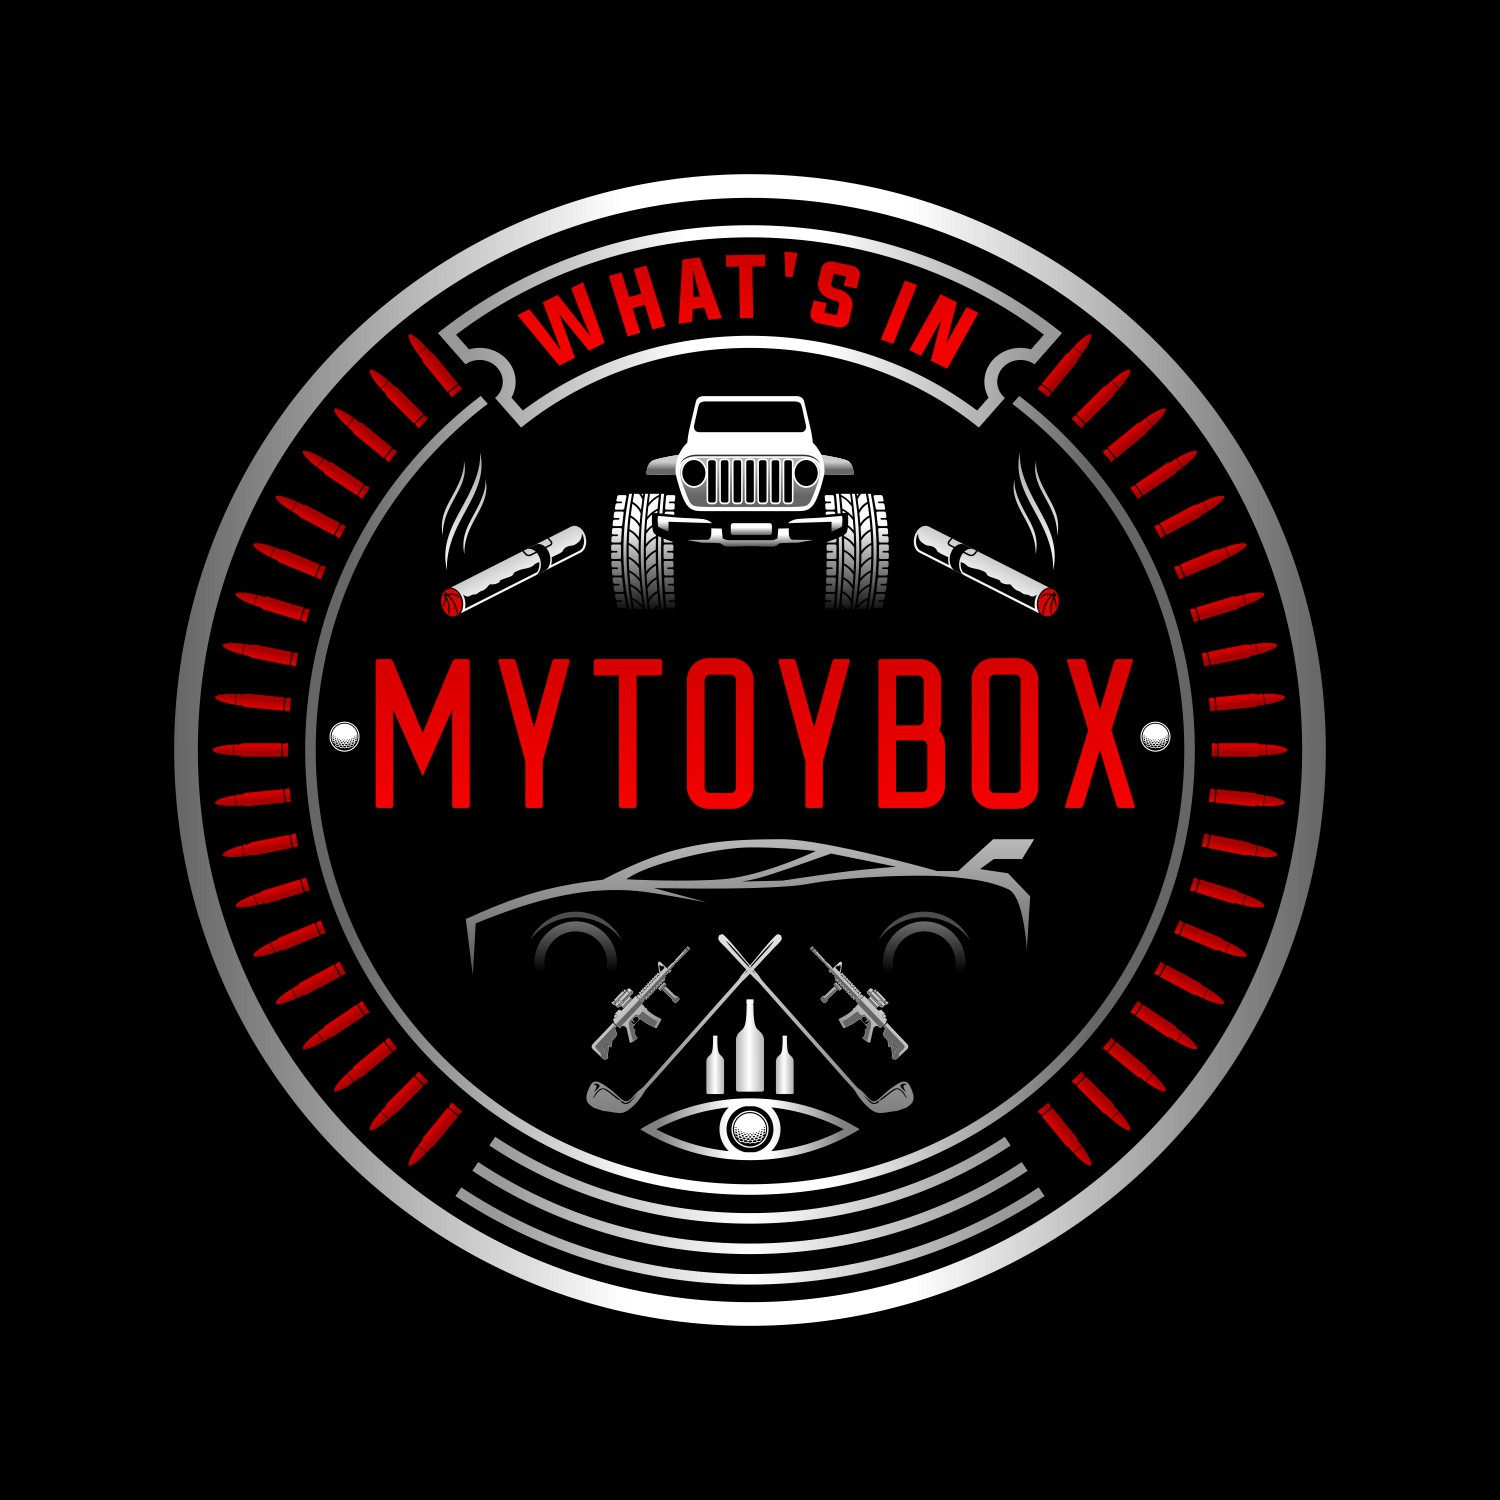 What's in MYTOYBOX?